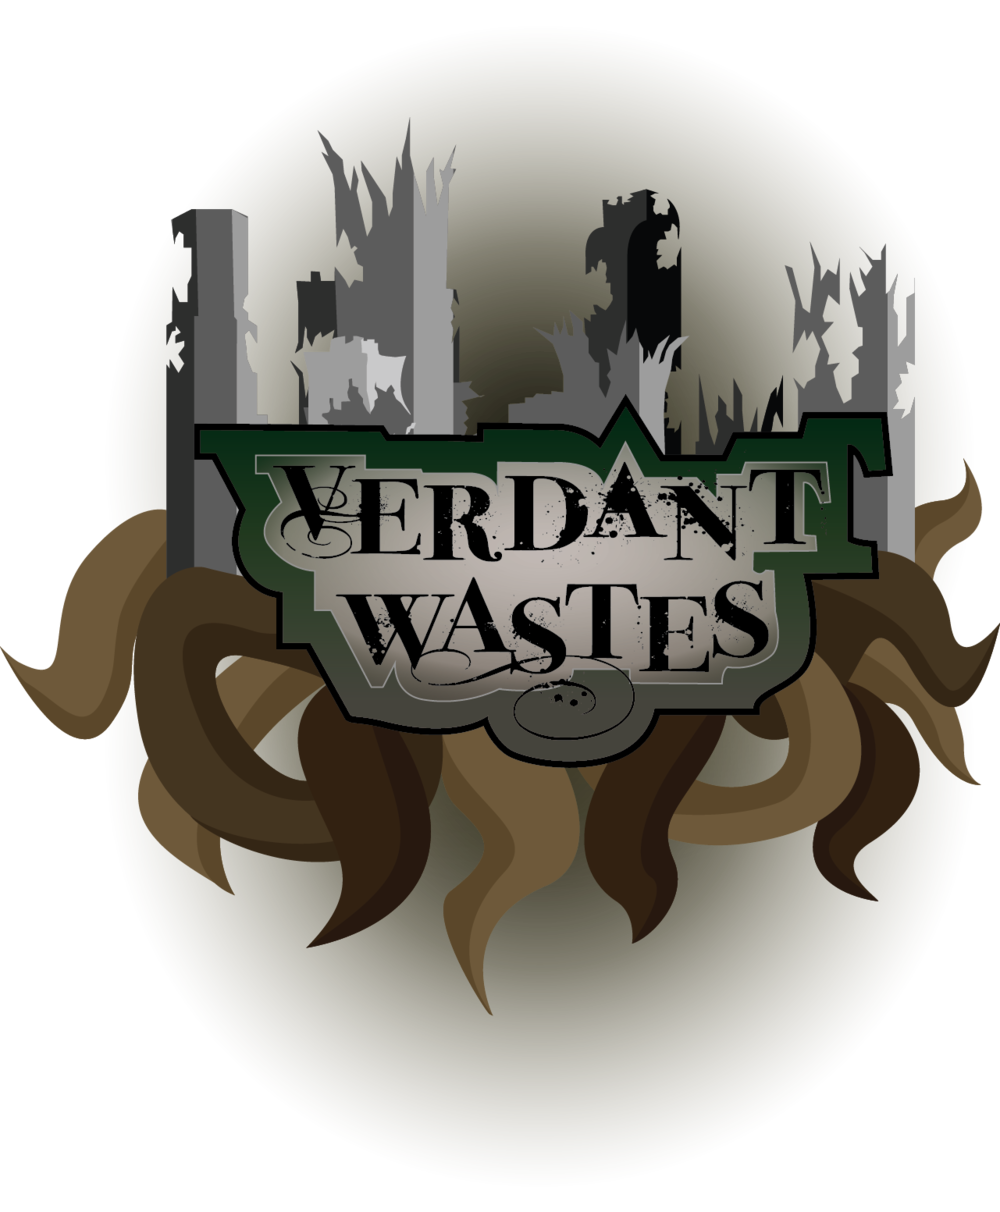 Verdant Wastes Full Logo